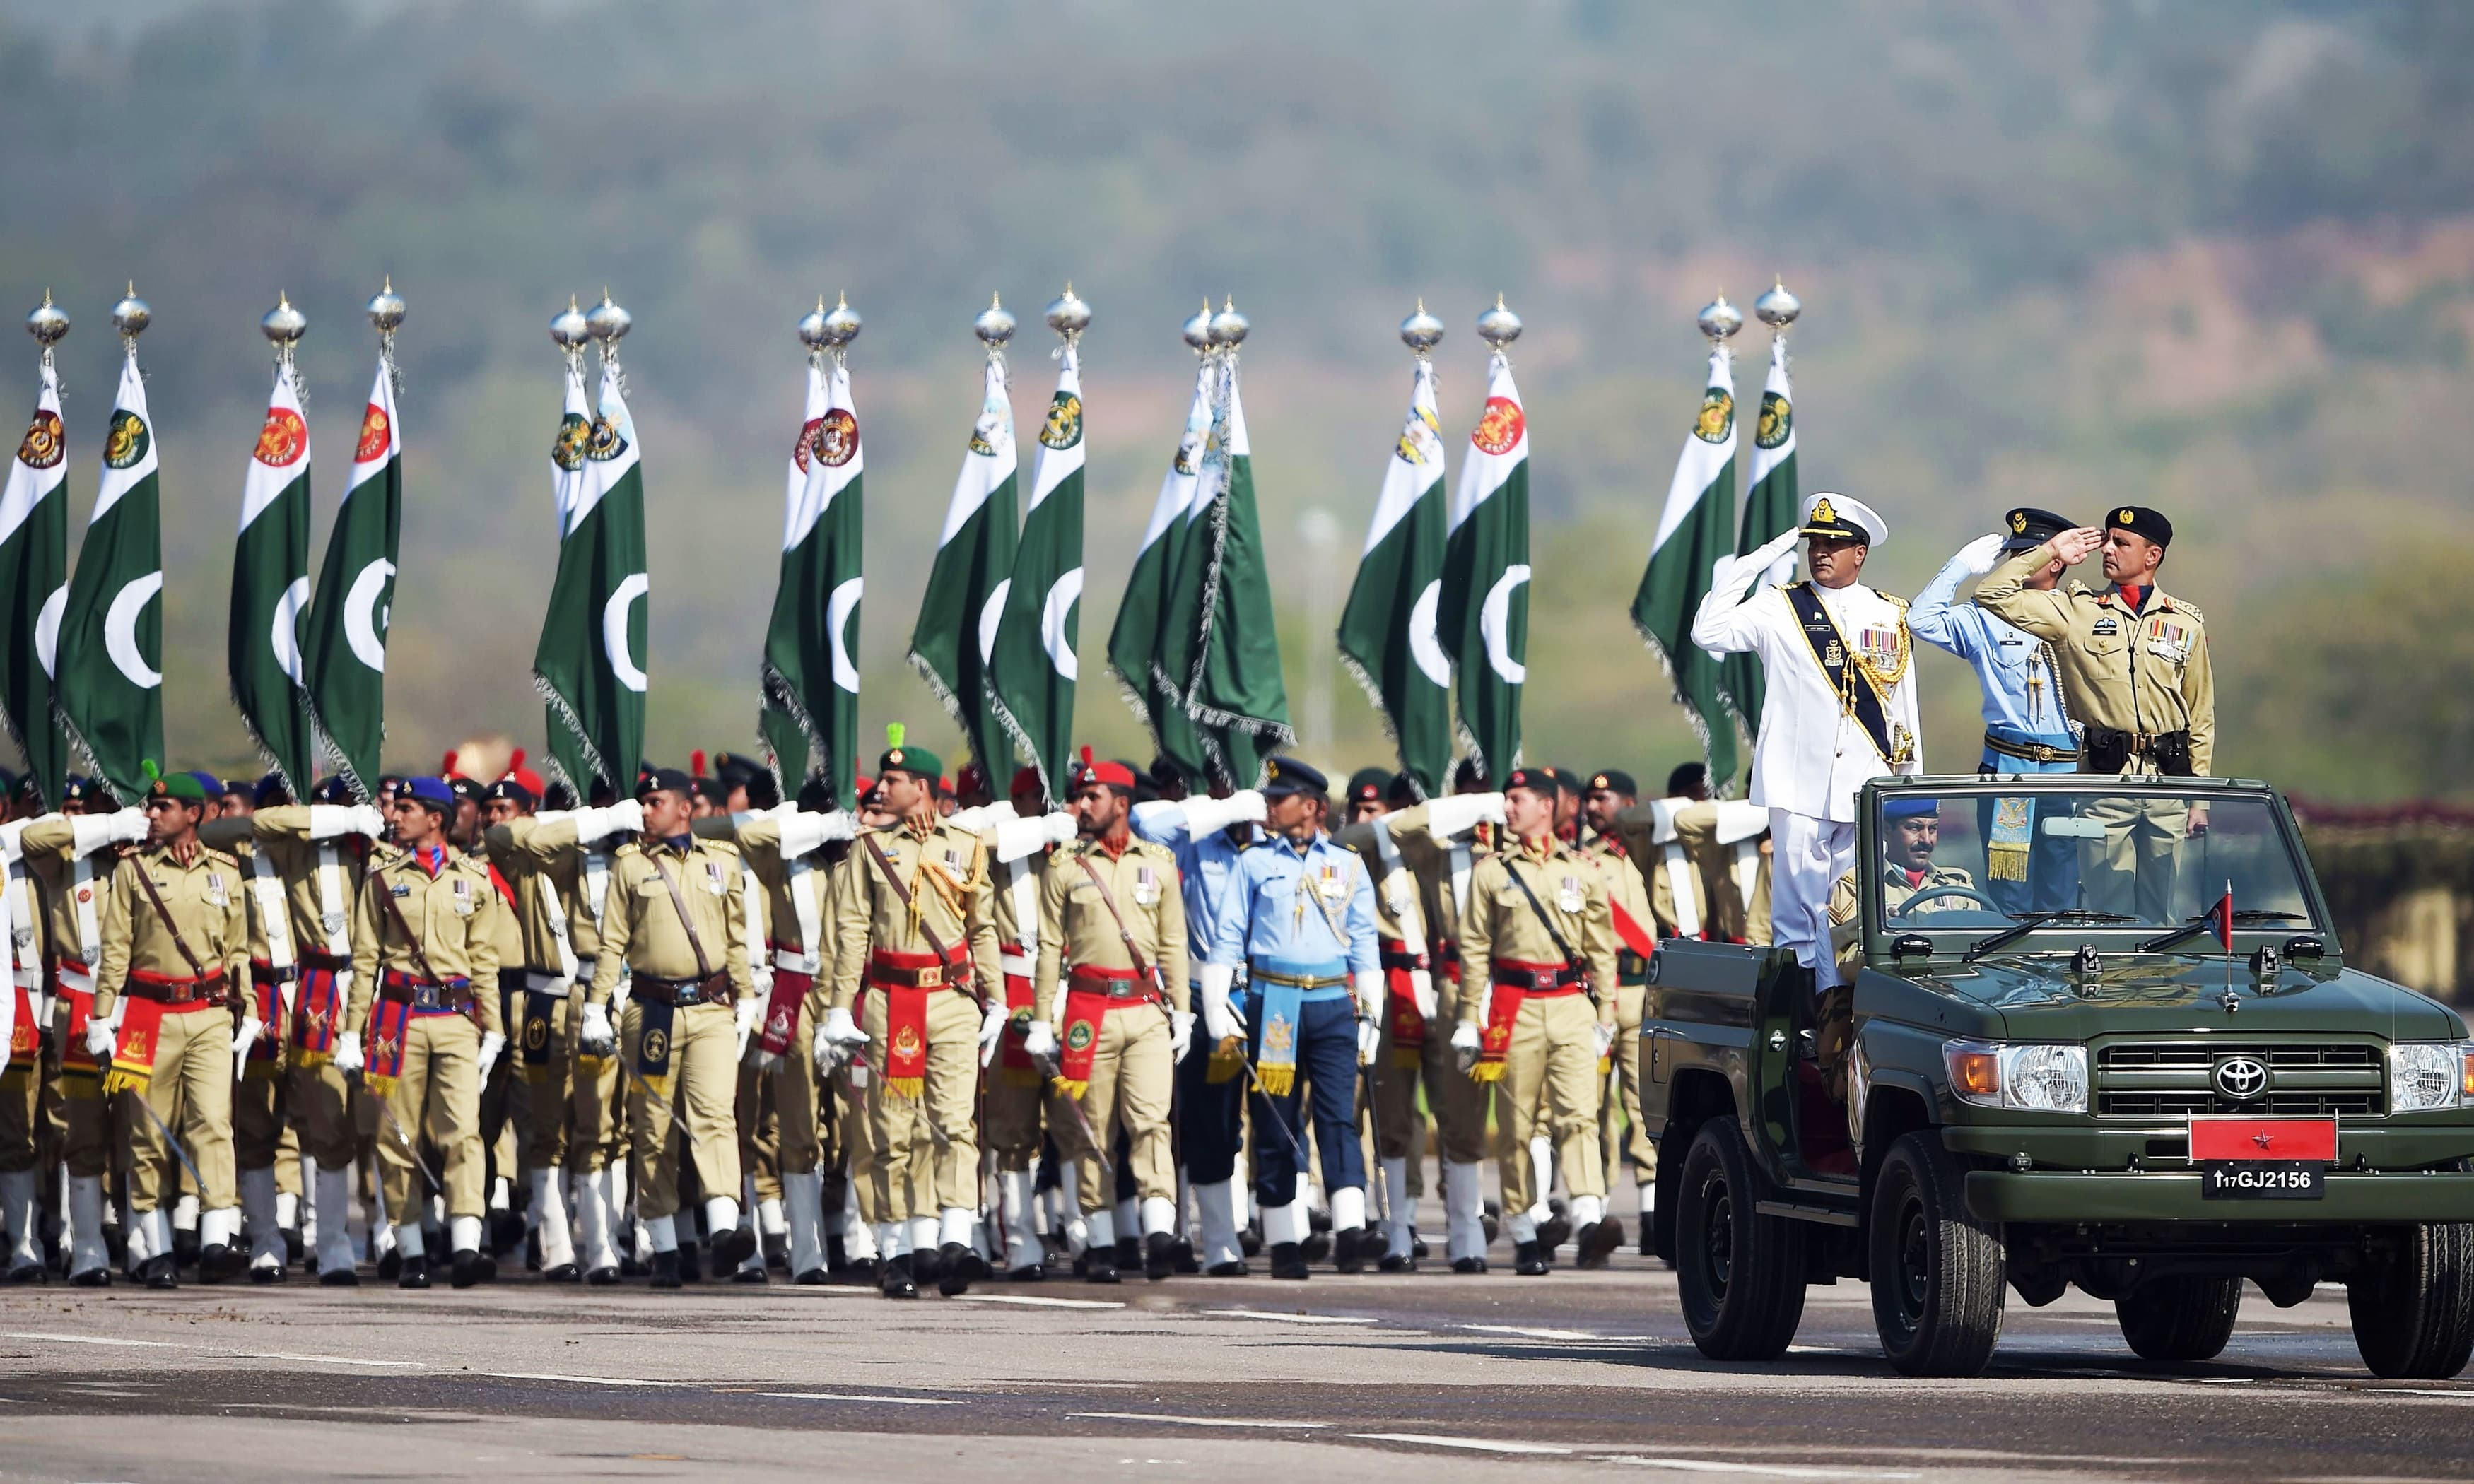 Soldiers march past during the Pakistan Day military parade in Islamabad. — AFP/File